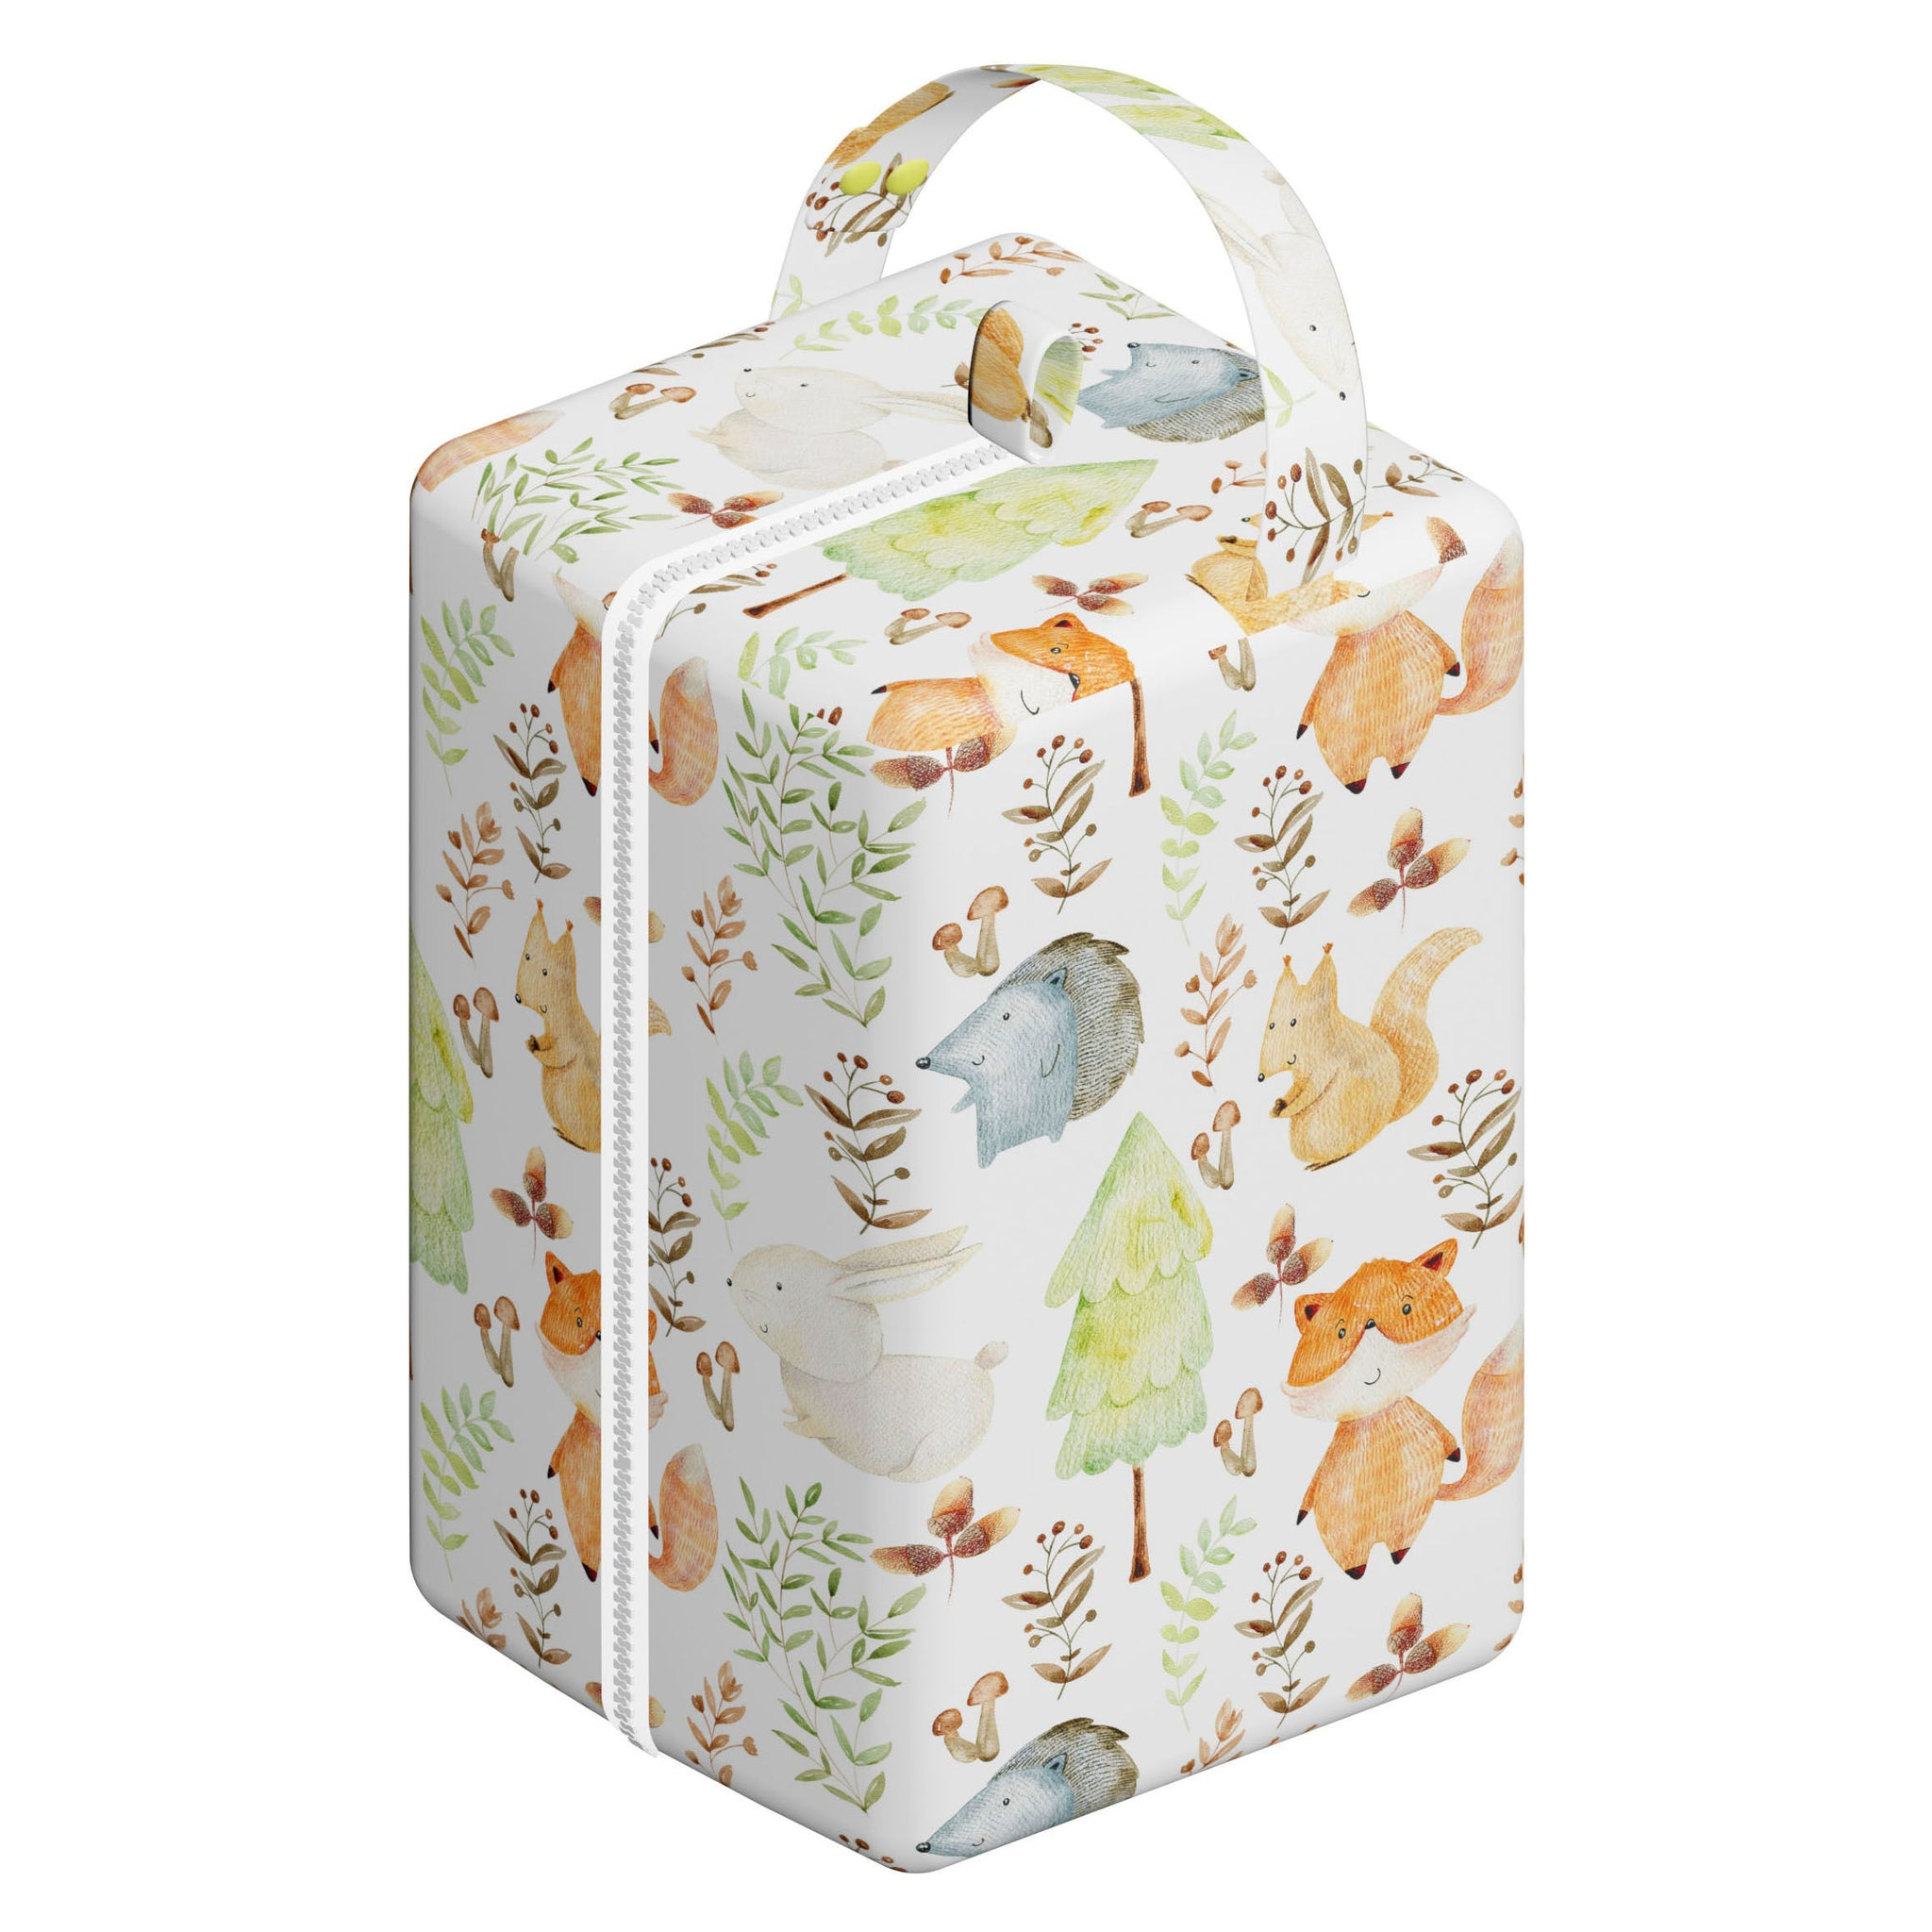 Nappy Box Co Enchanted Woodlands Print Nappy Pod Zip Wet Bag